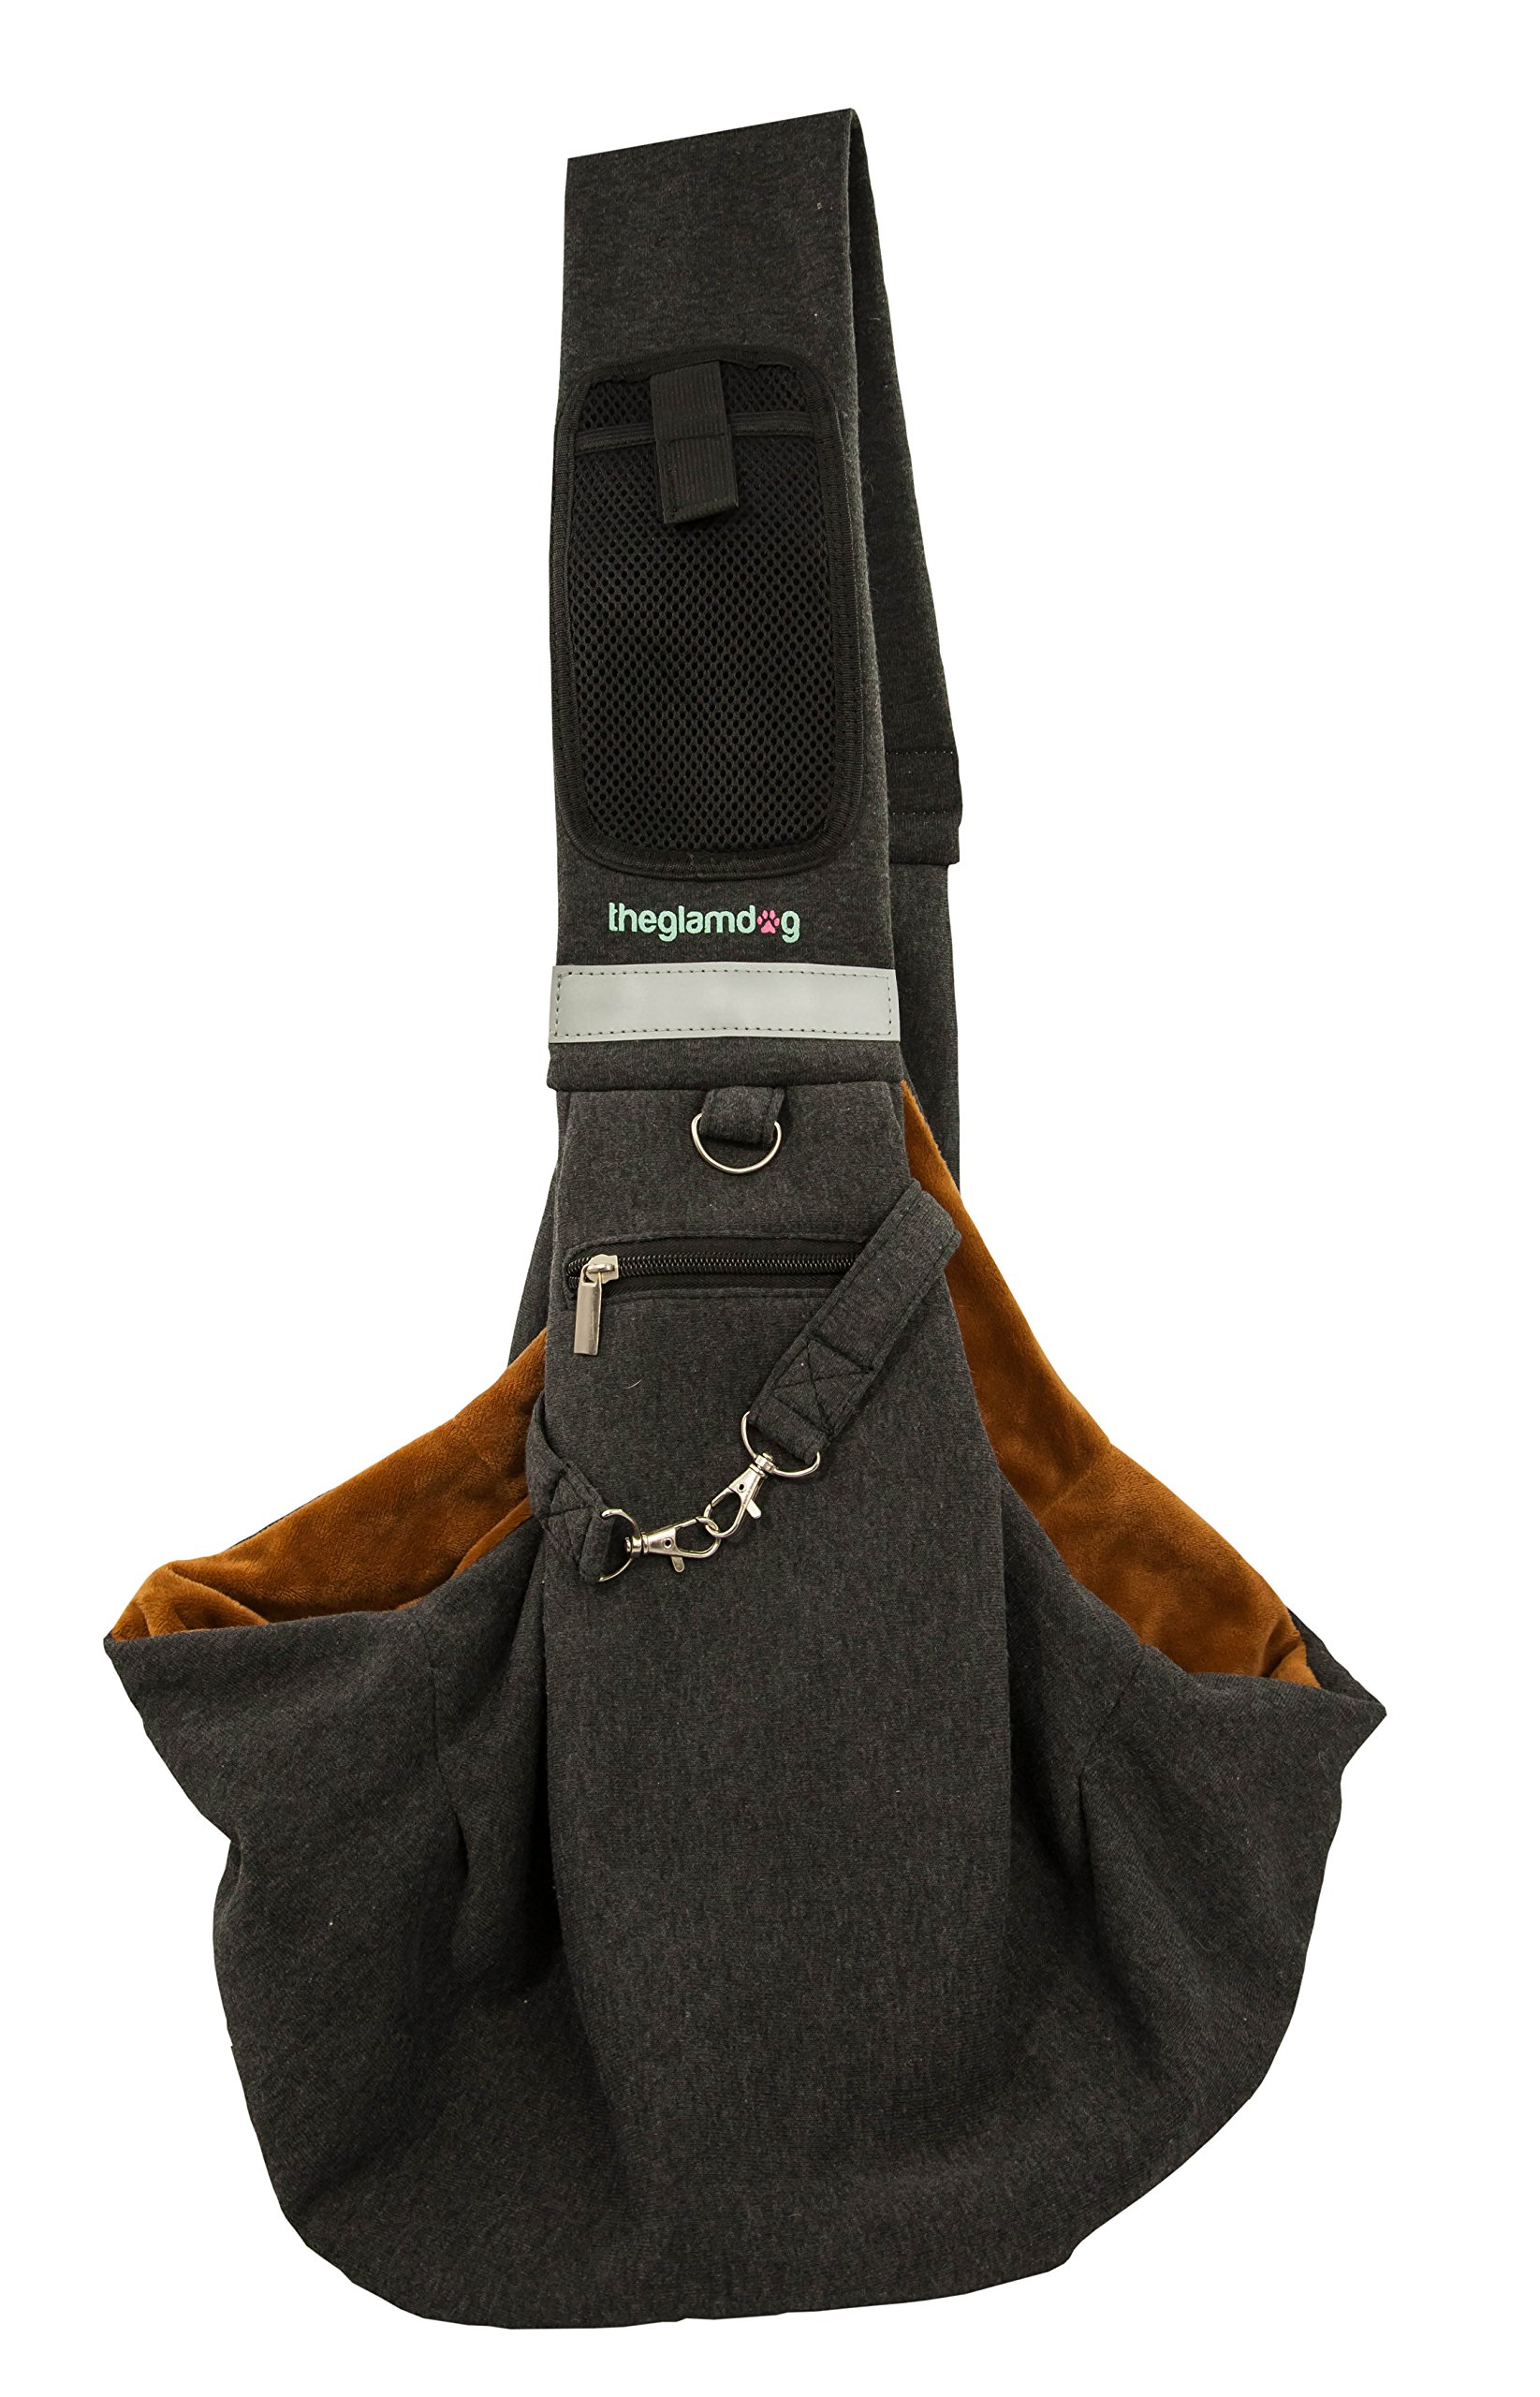 yohino Theglamdog Pet Carrier Shoulder Sling for Small Dogs and Cats, Smartphone Mesh Pocket with Fastenable Closure and Zippered Pocket for Treats, Waste Bags, Small Flashlight (Black/Brown) by yohino